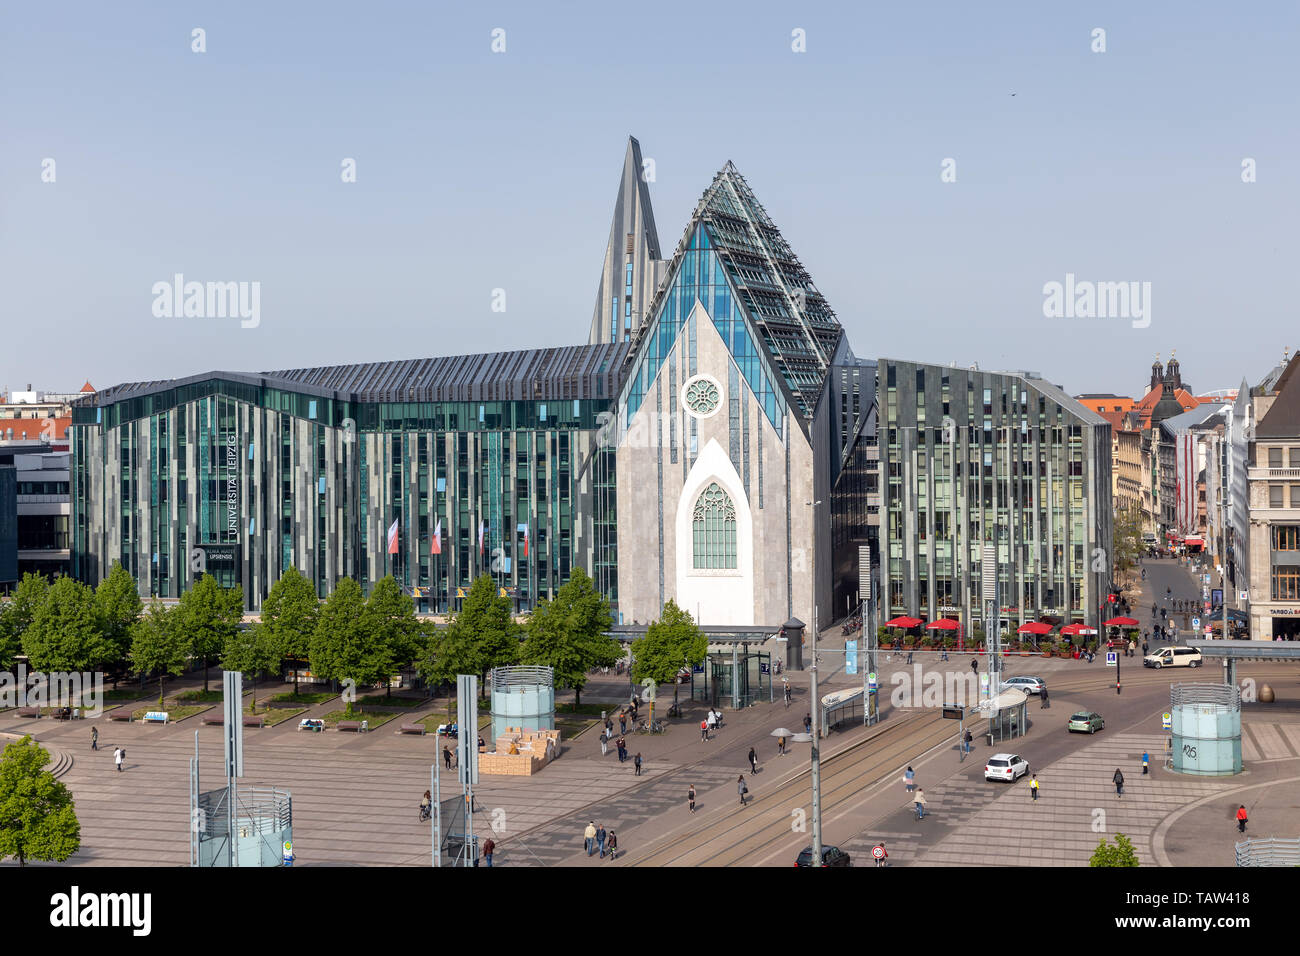 Universitaet Leipzig High Resolution Stock Photography And Images Alamy